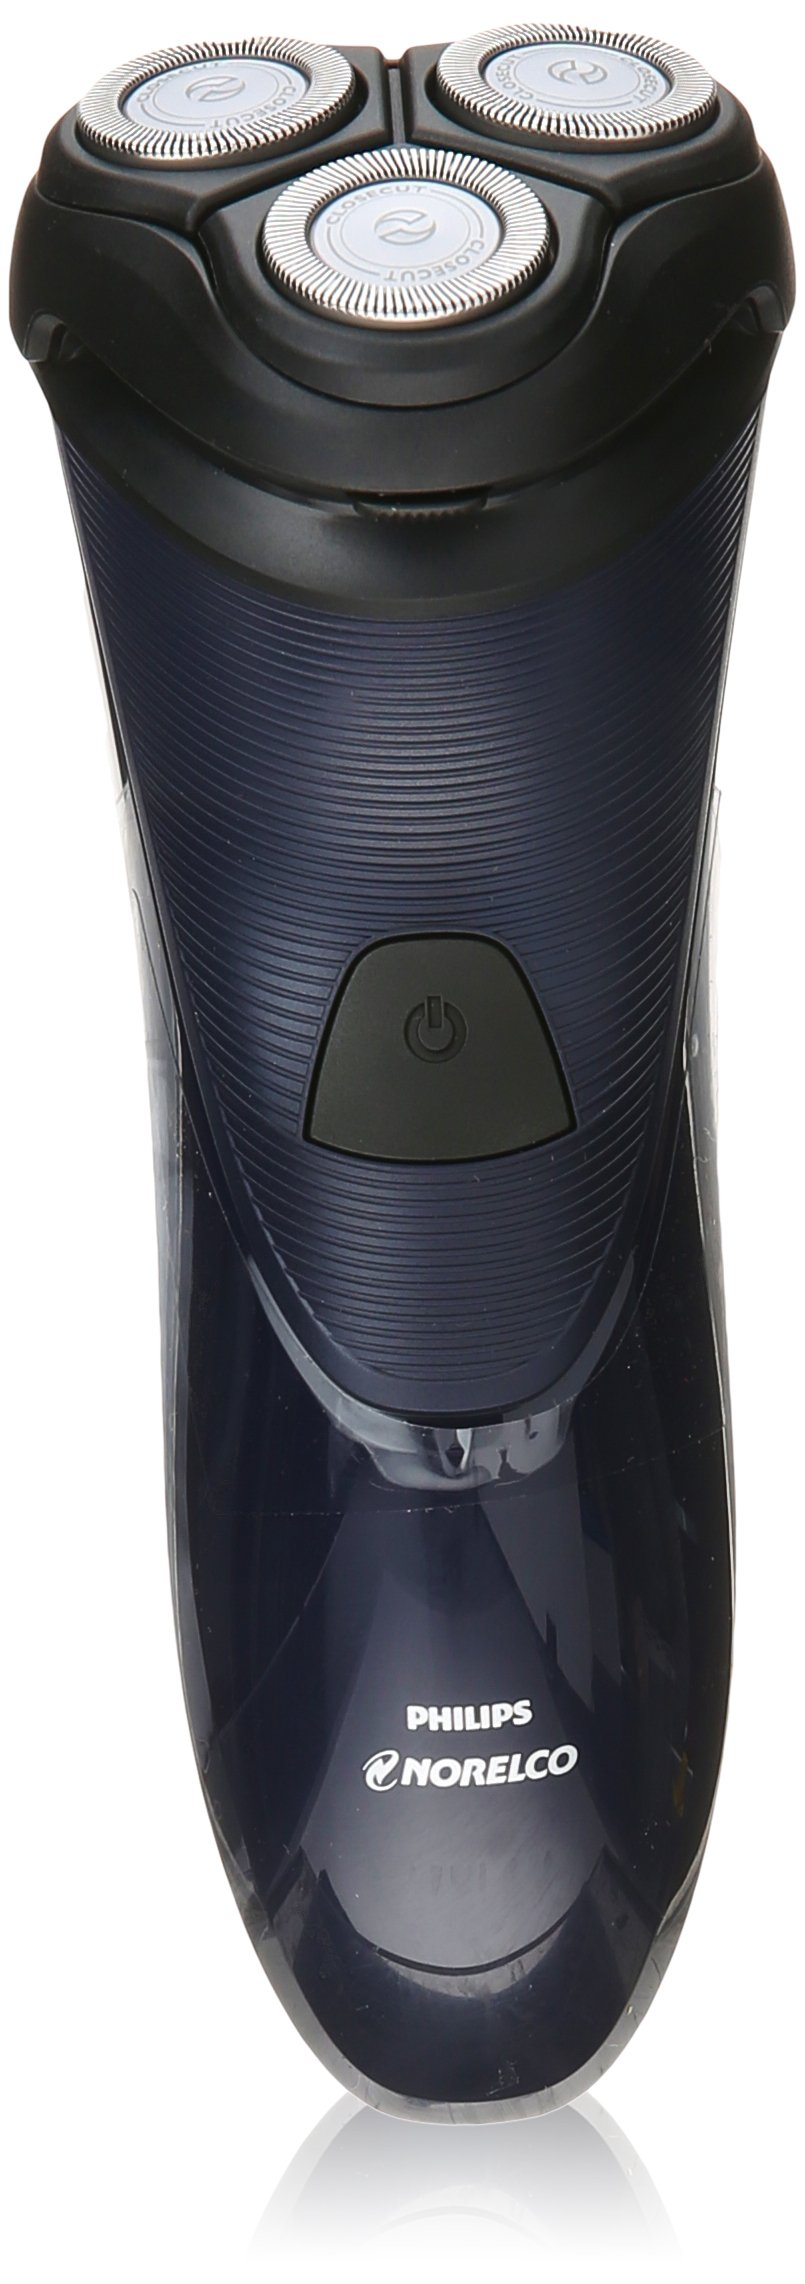 Philips Norelco Corded Electric Shaver 1100, S1150/81 with CloseCut Blade System by Philips Norelco